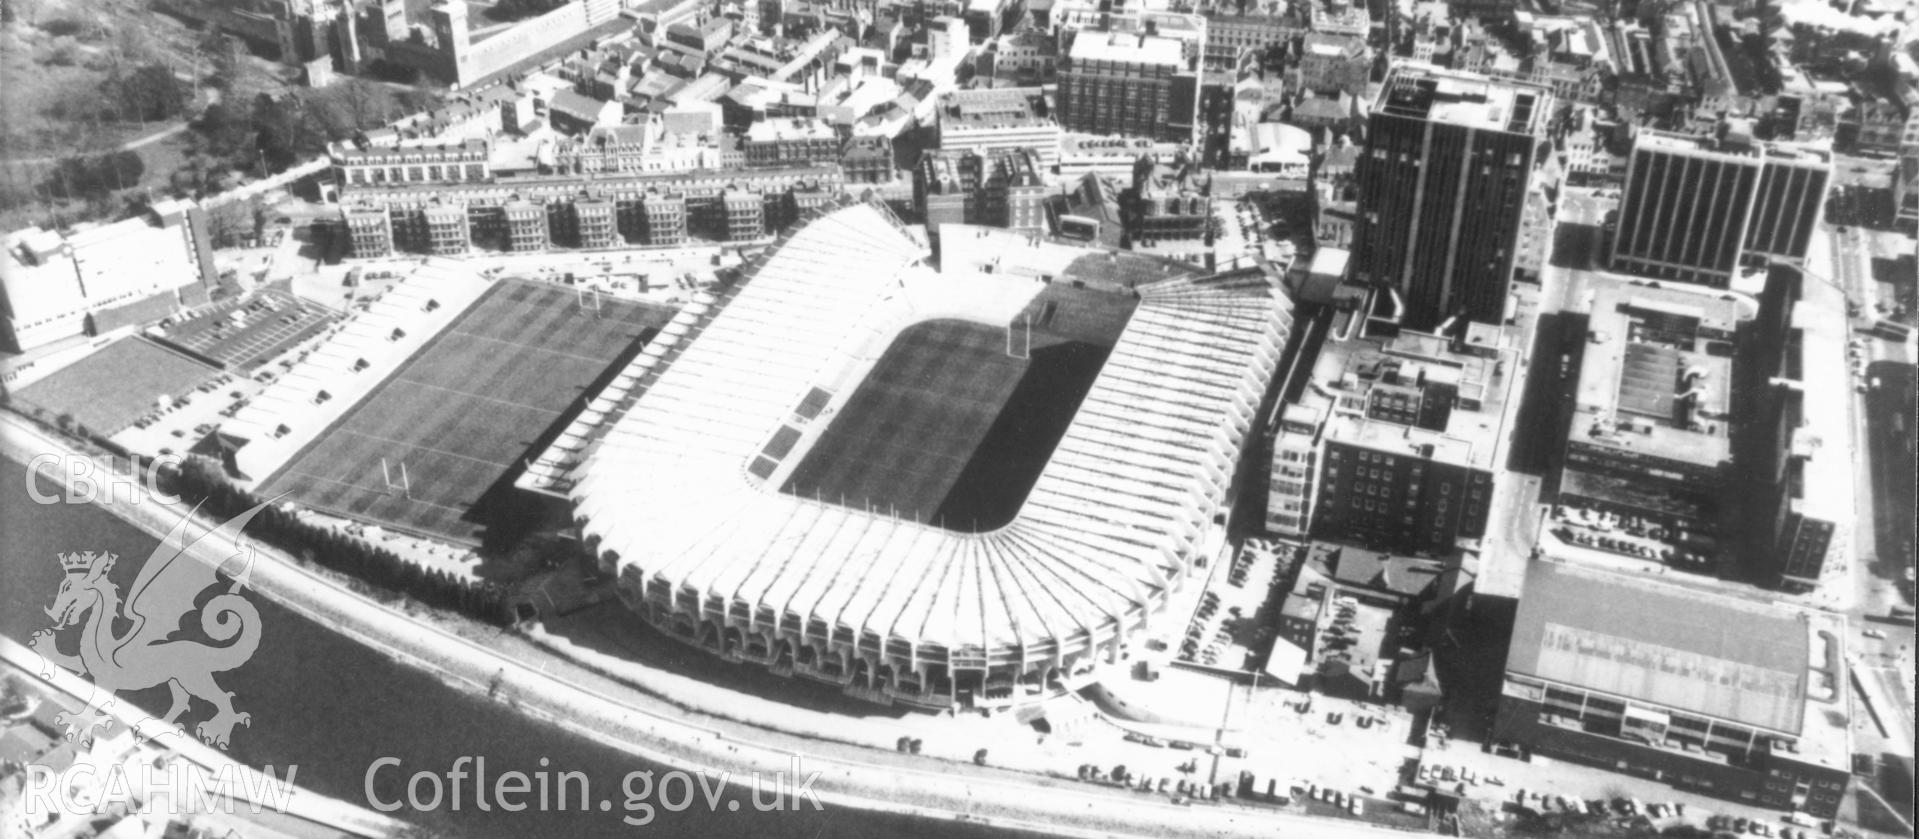 1 b/w print showing aerial oblique view of Cardiff Arms Park, Cardiff; collated by the former Central Office of Information.